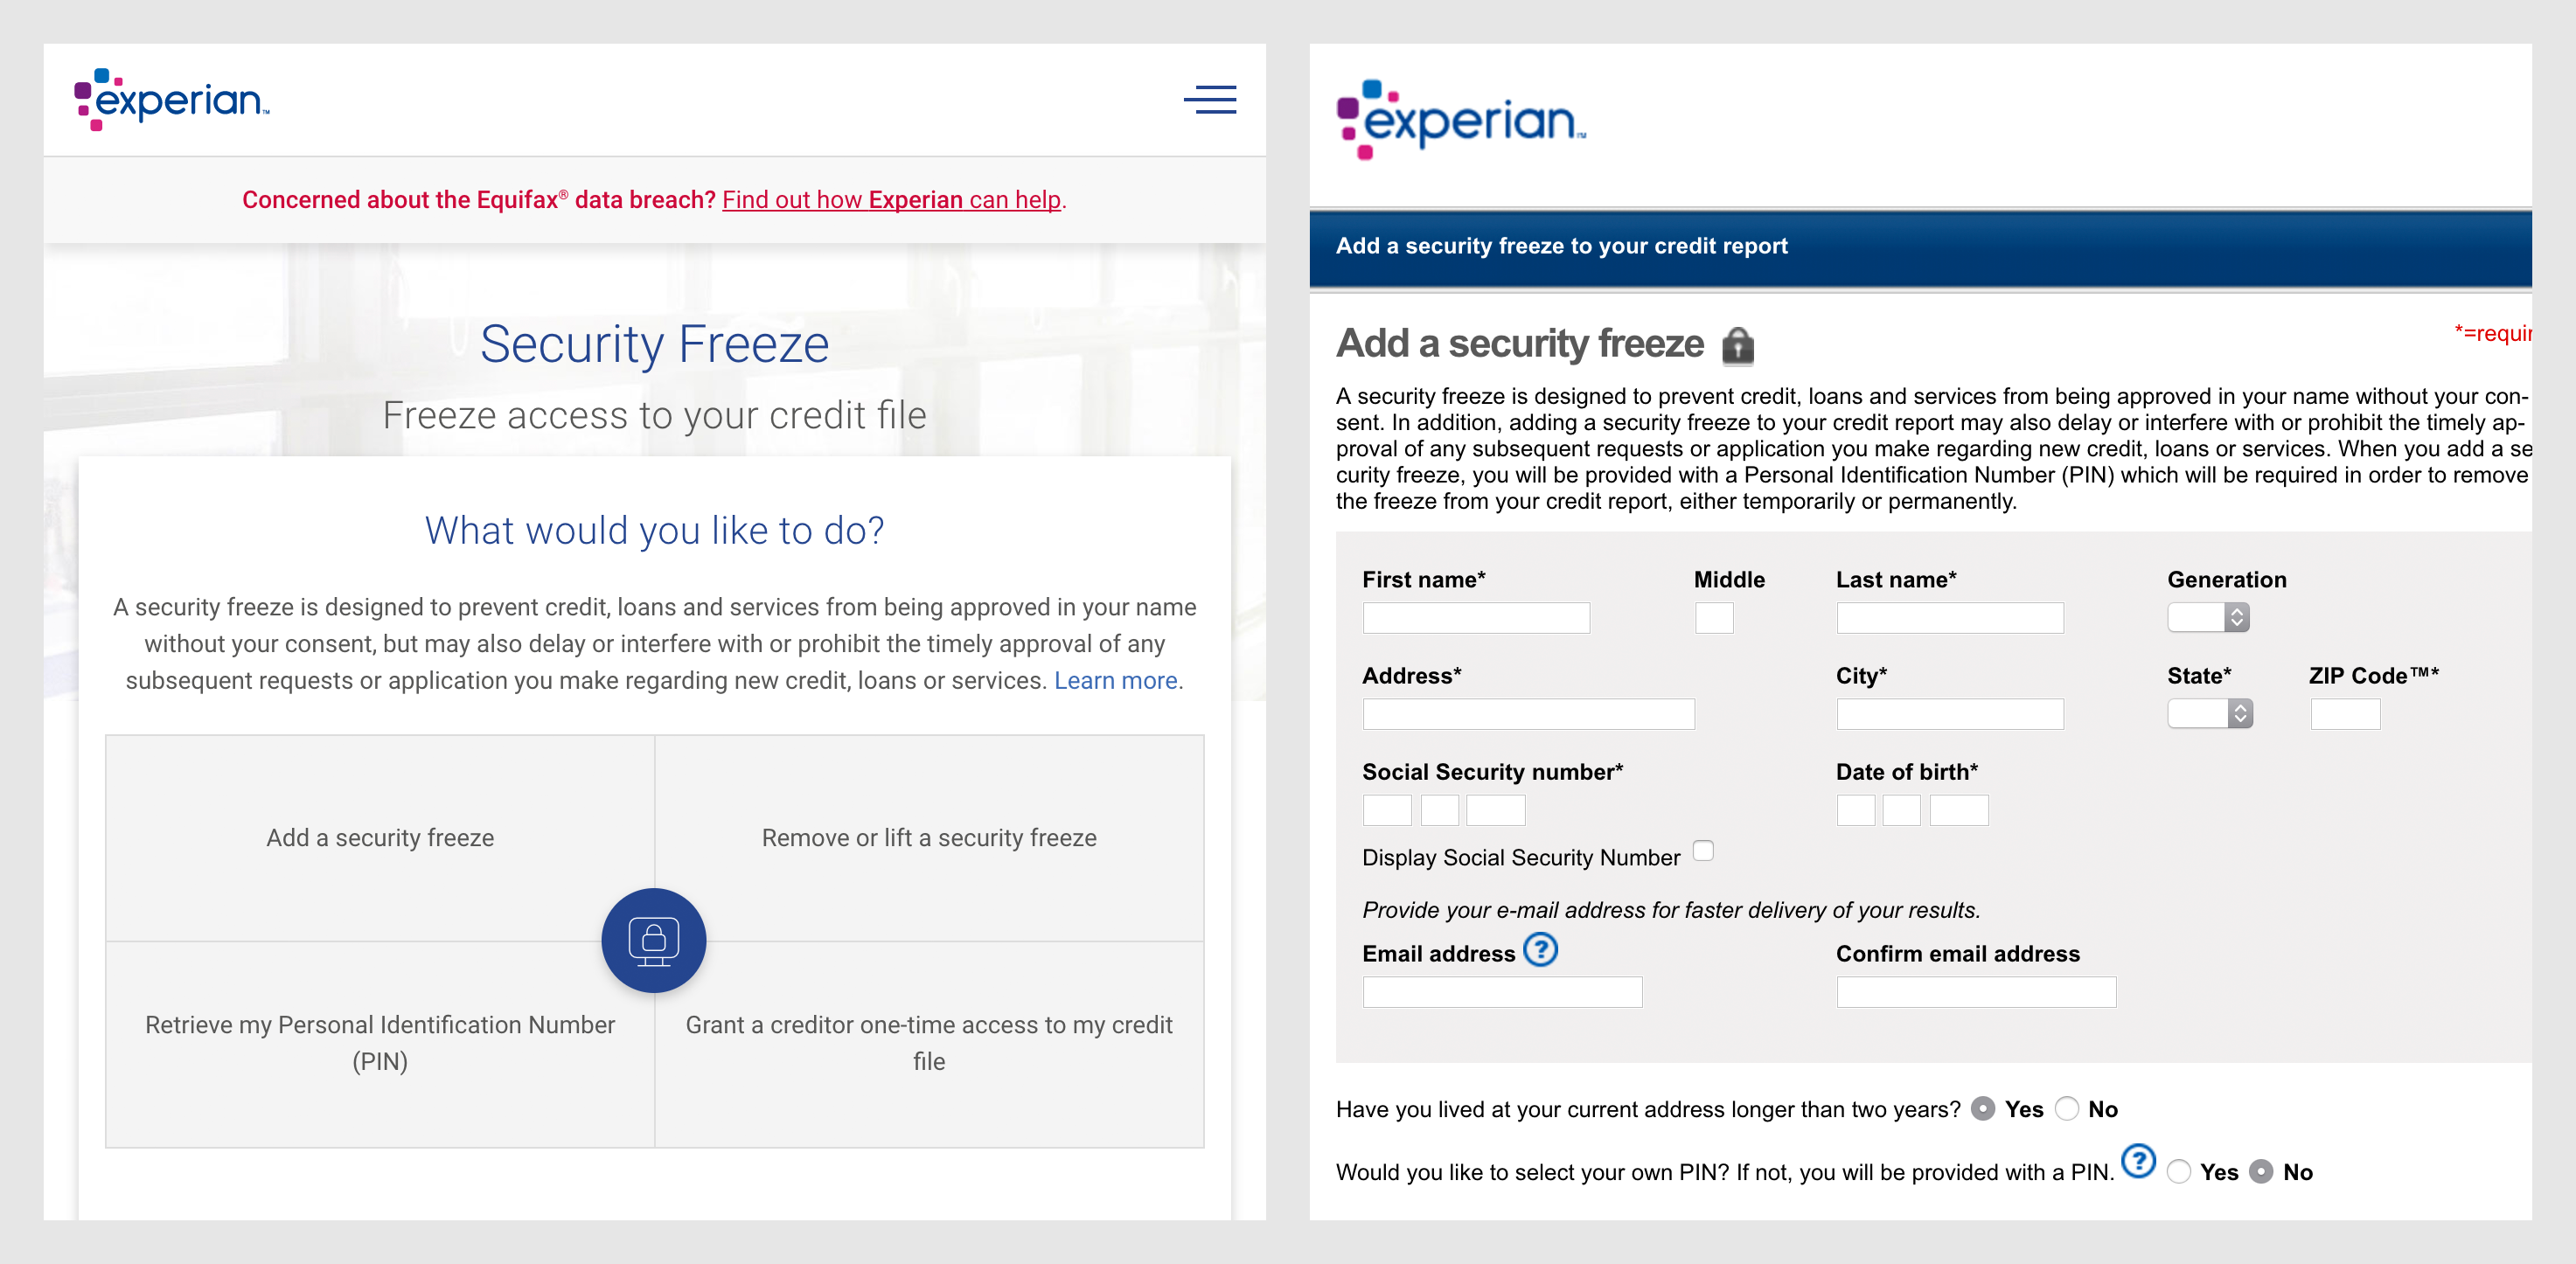 A side by side comparison of screenshots of Experian's homepage and Credit Freeze request form.